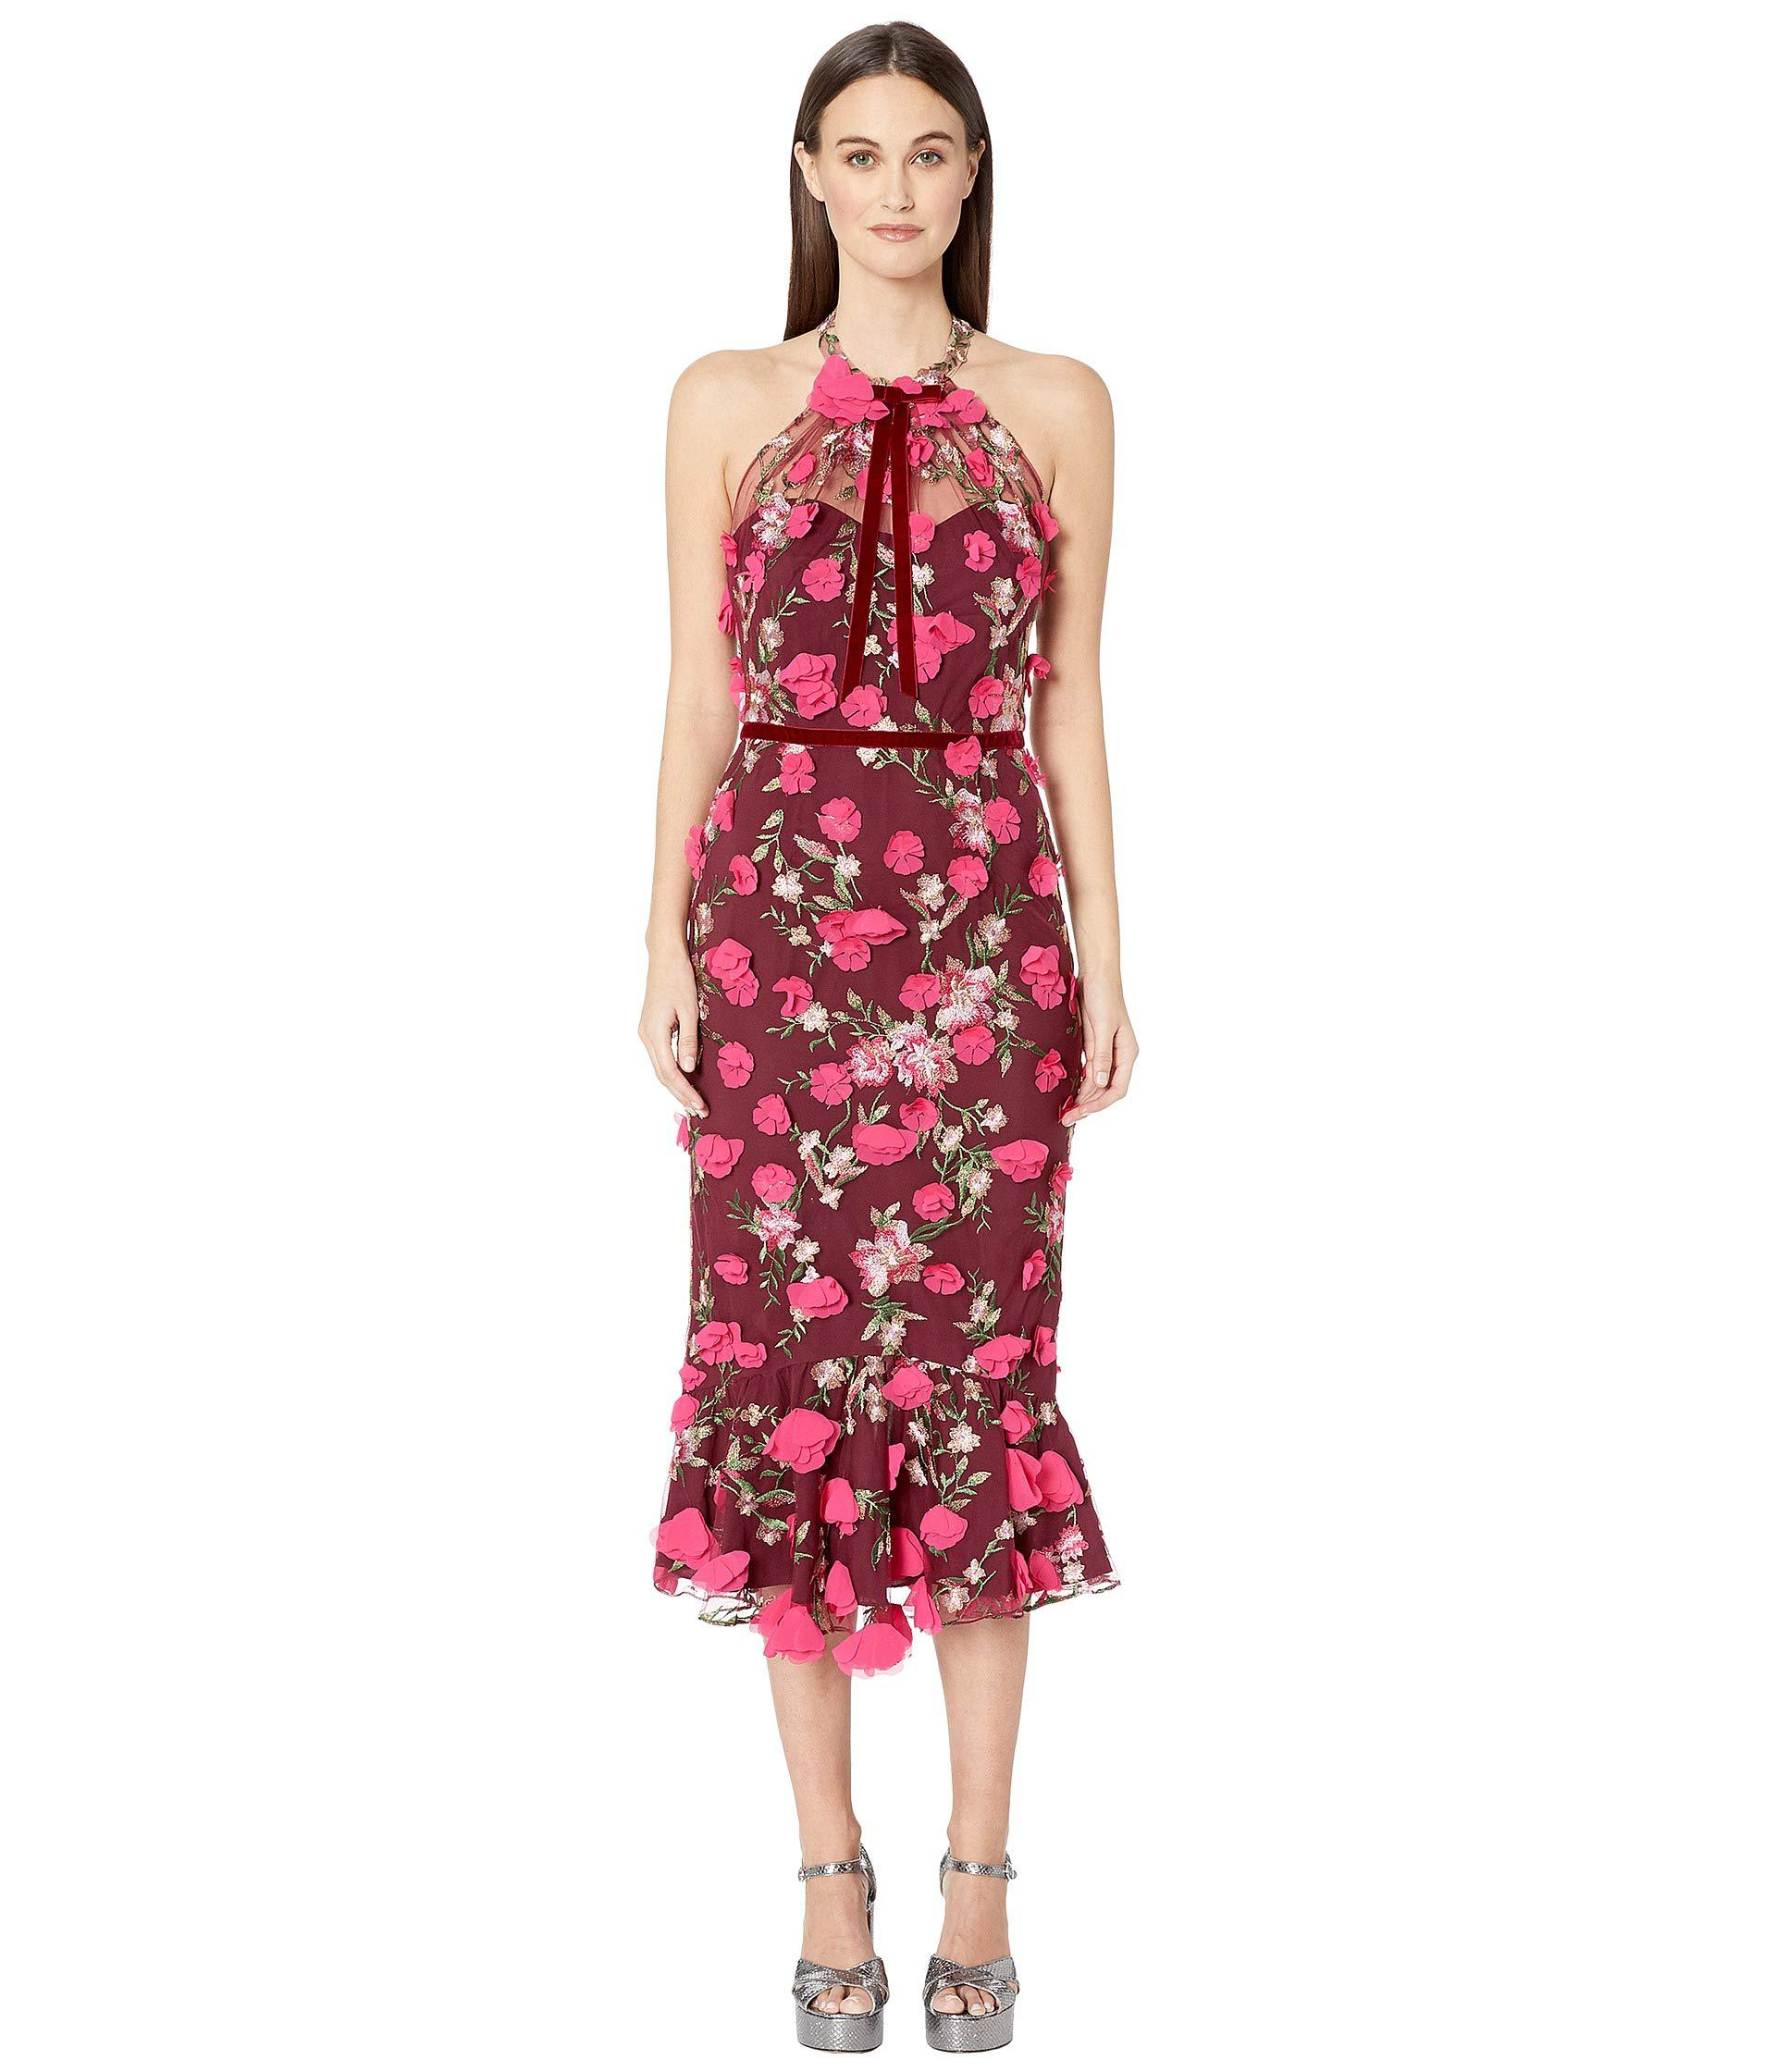 4d7279ff0d36 Lyst - Marchesa notte Sleeveless Embroidered Halter Cocktail W  3d ...